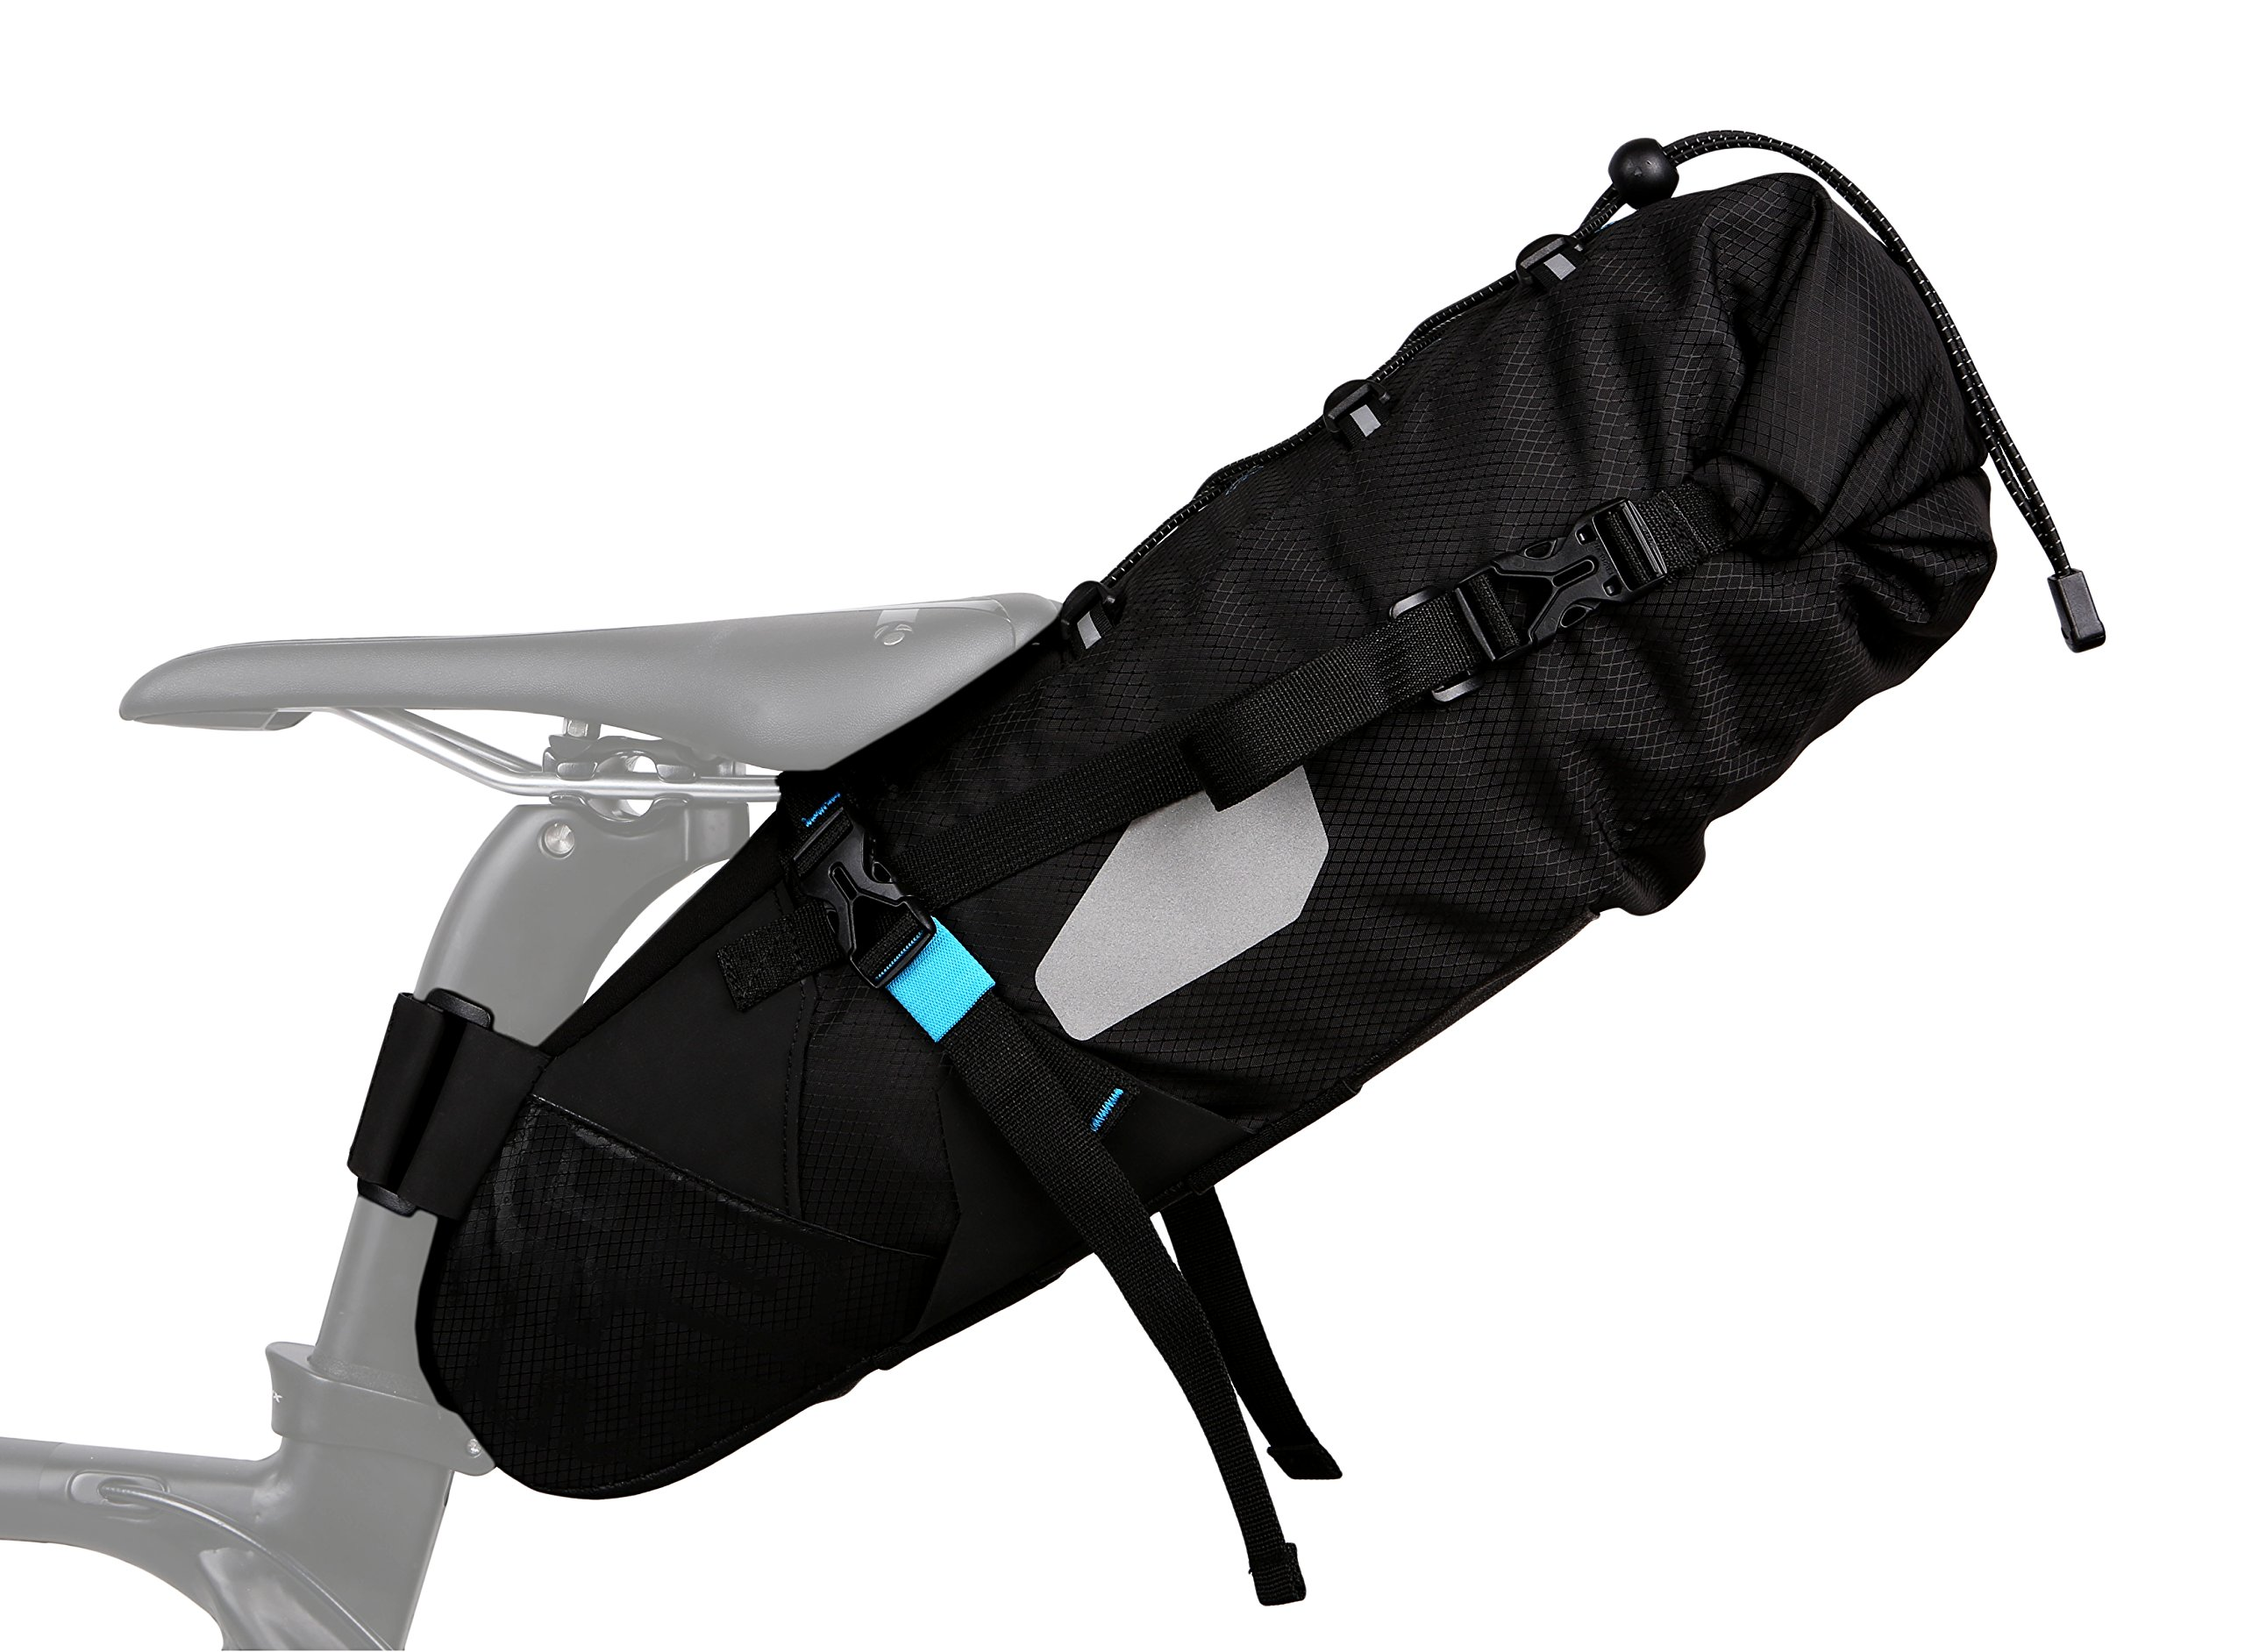 Roswheel ATTACK Series 131372  Waterproof 3-10 Liters Capacity Cycling Accessories Bag Bike Saddle Bag Bicycle Seat Pack Cycling Tail Pouch by Roswheel